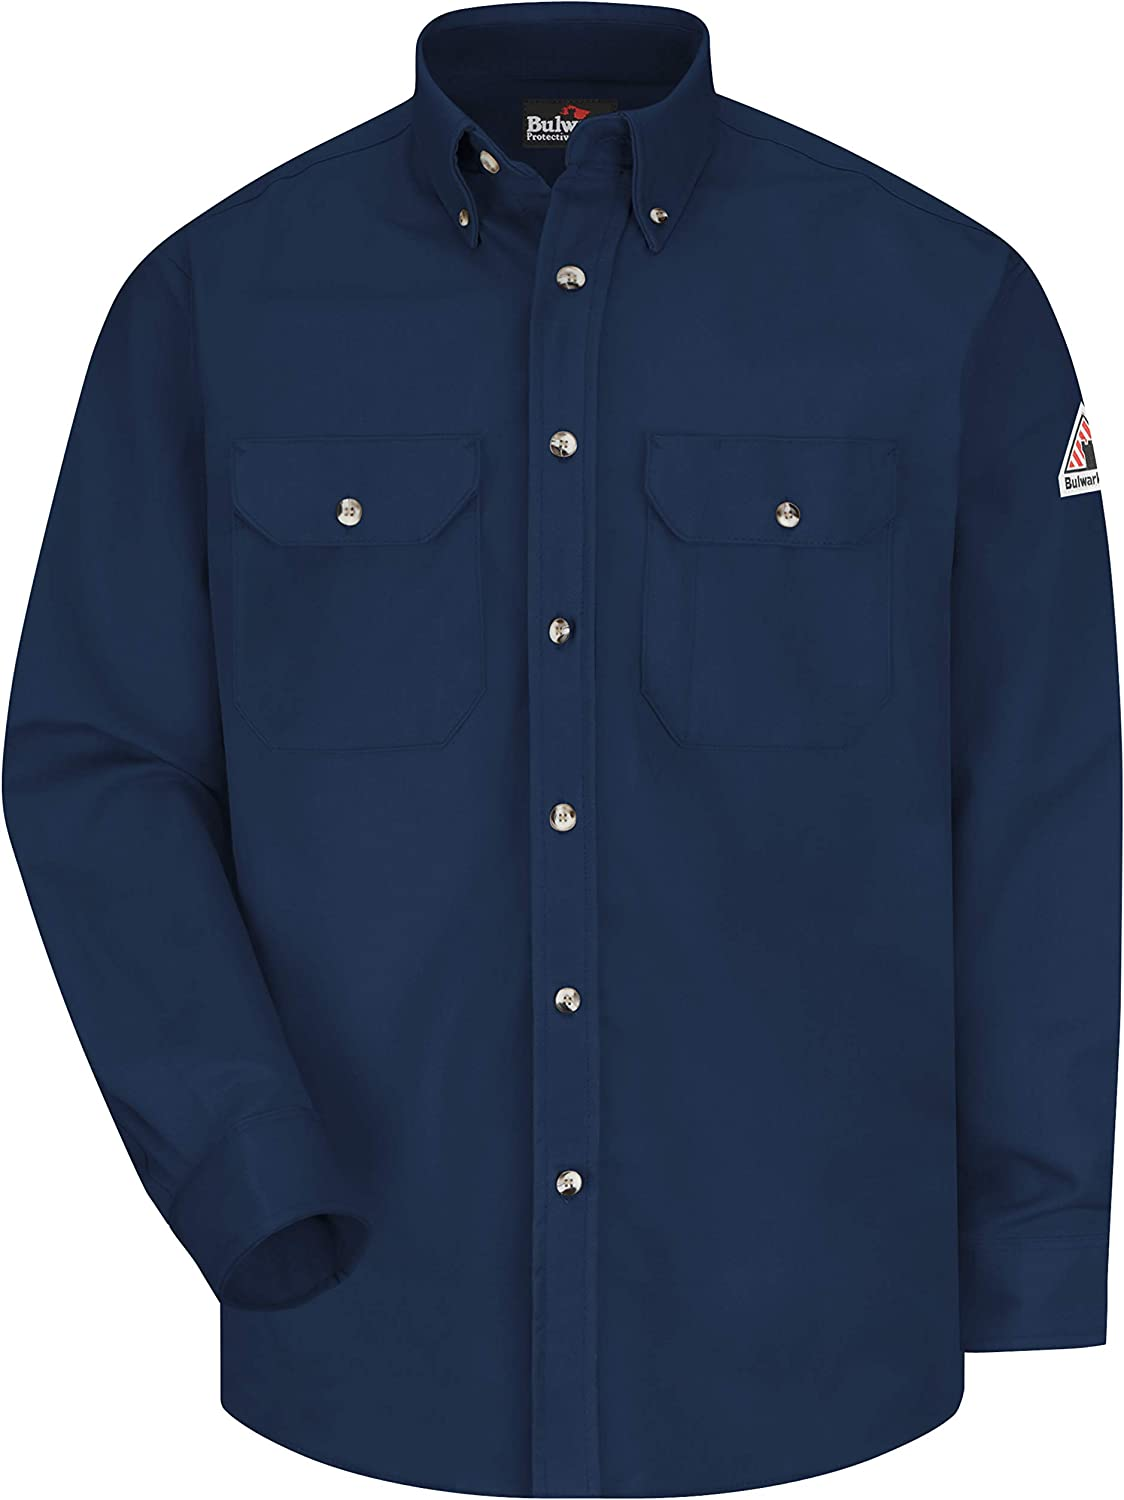 Bulwark Flame Resistant 7 oz Cotton/Nylon Excel FR ComforTouch Long Dress Uniform Shirt with Tailored Sleeve Plackets, Topstitched Cuff, Navy, Medium